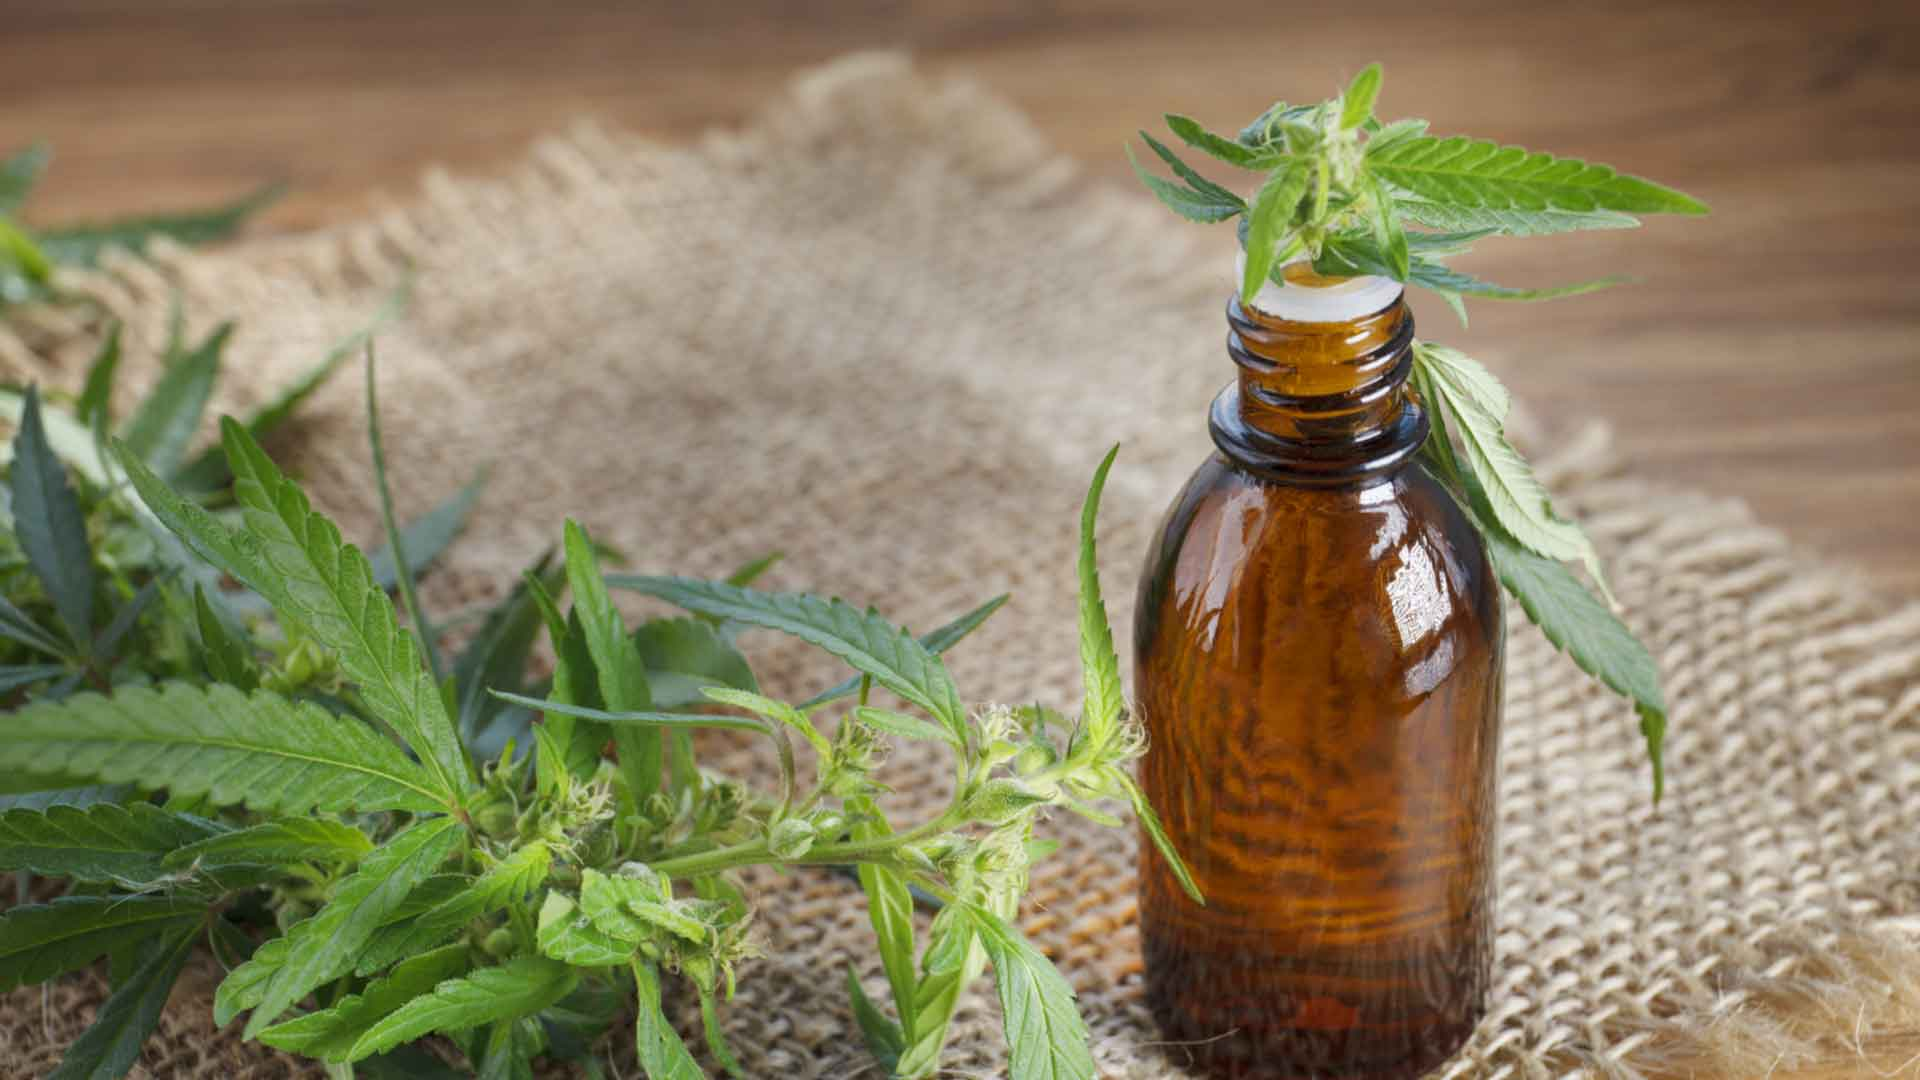 The Health Benefits of CBD Tincture and How To Make It - Wikileaf